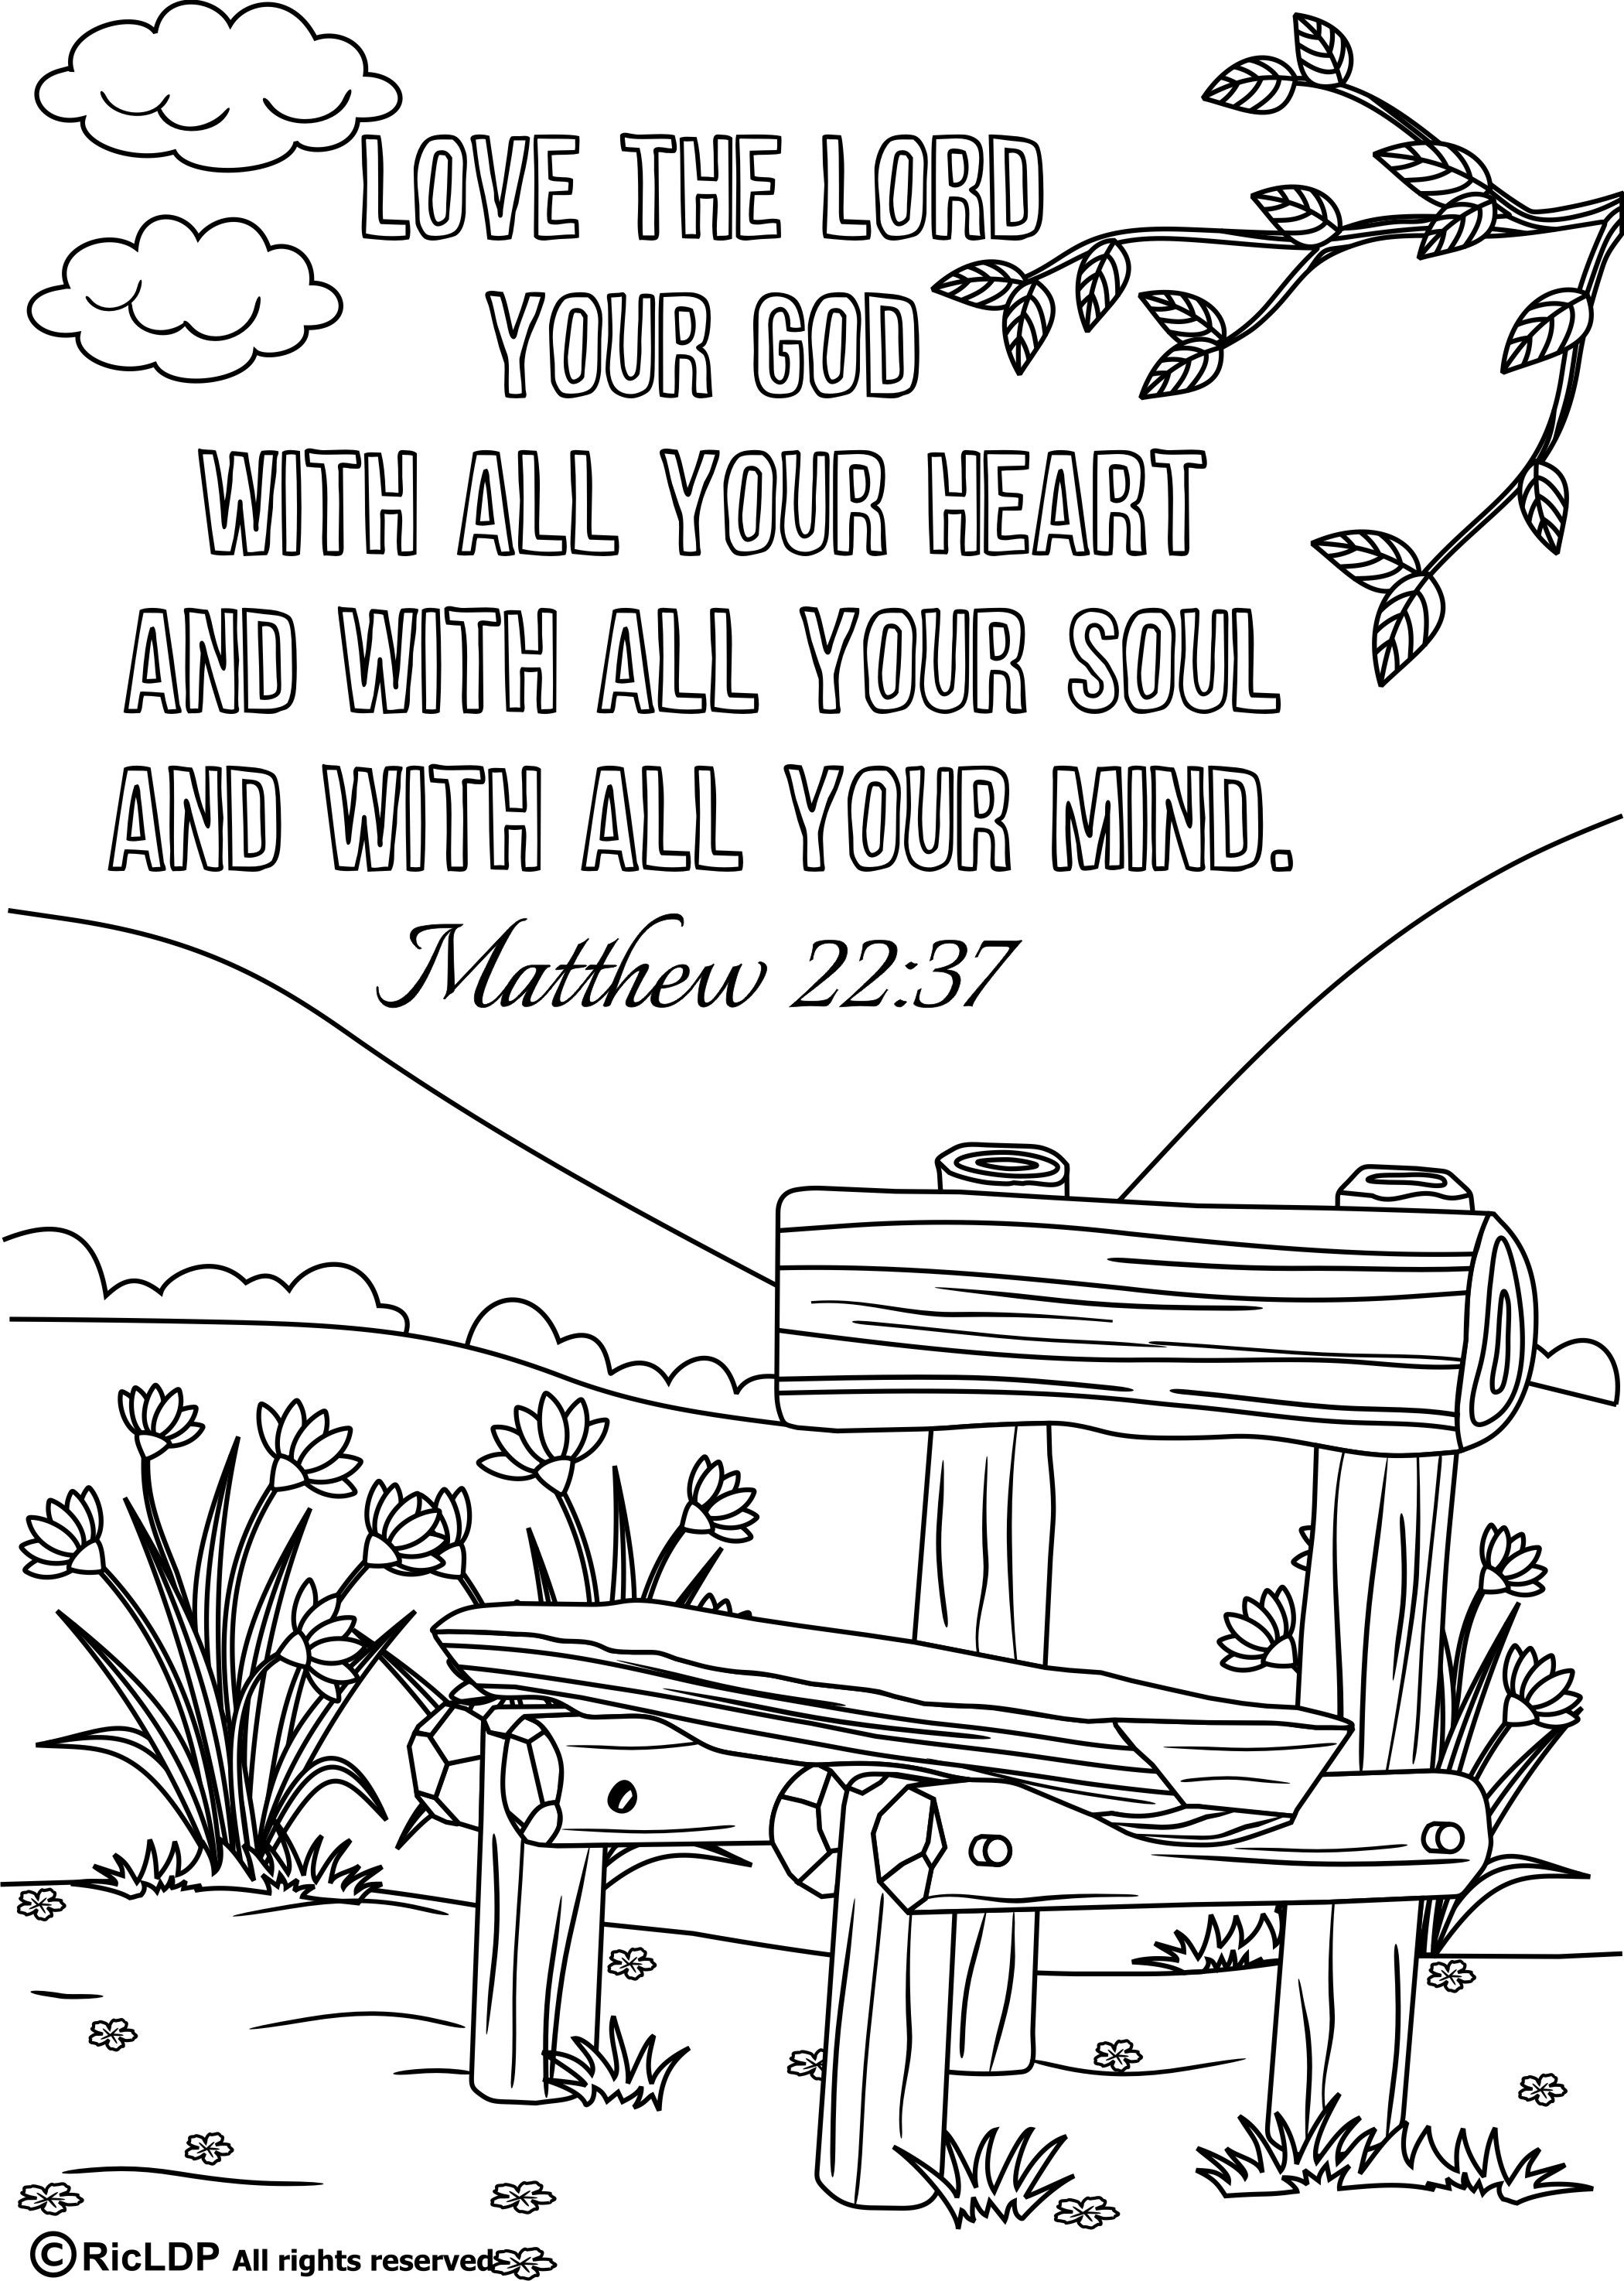 15 Bible Verses Coloring Pages Christian Coloring Pages